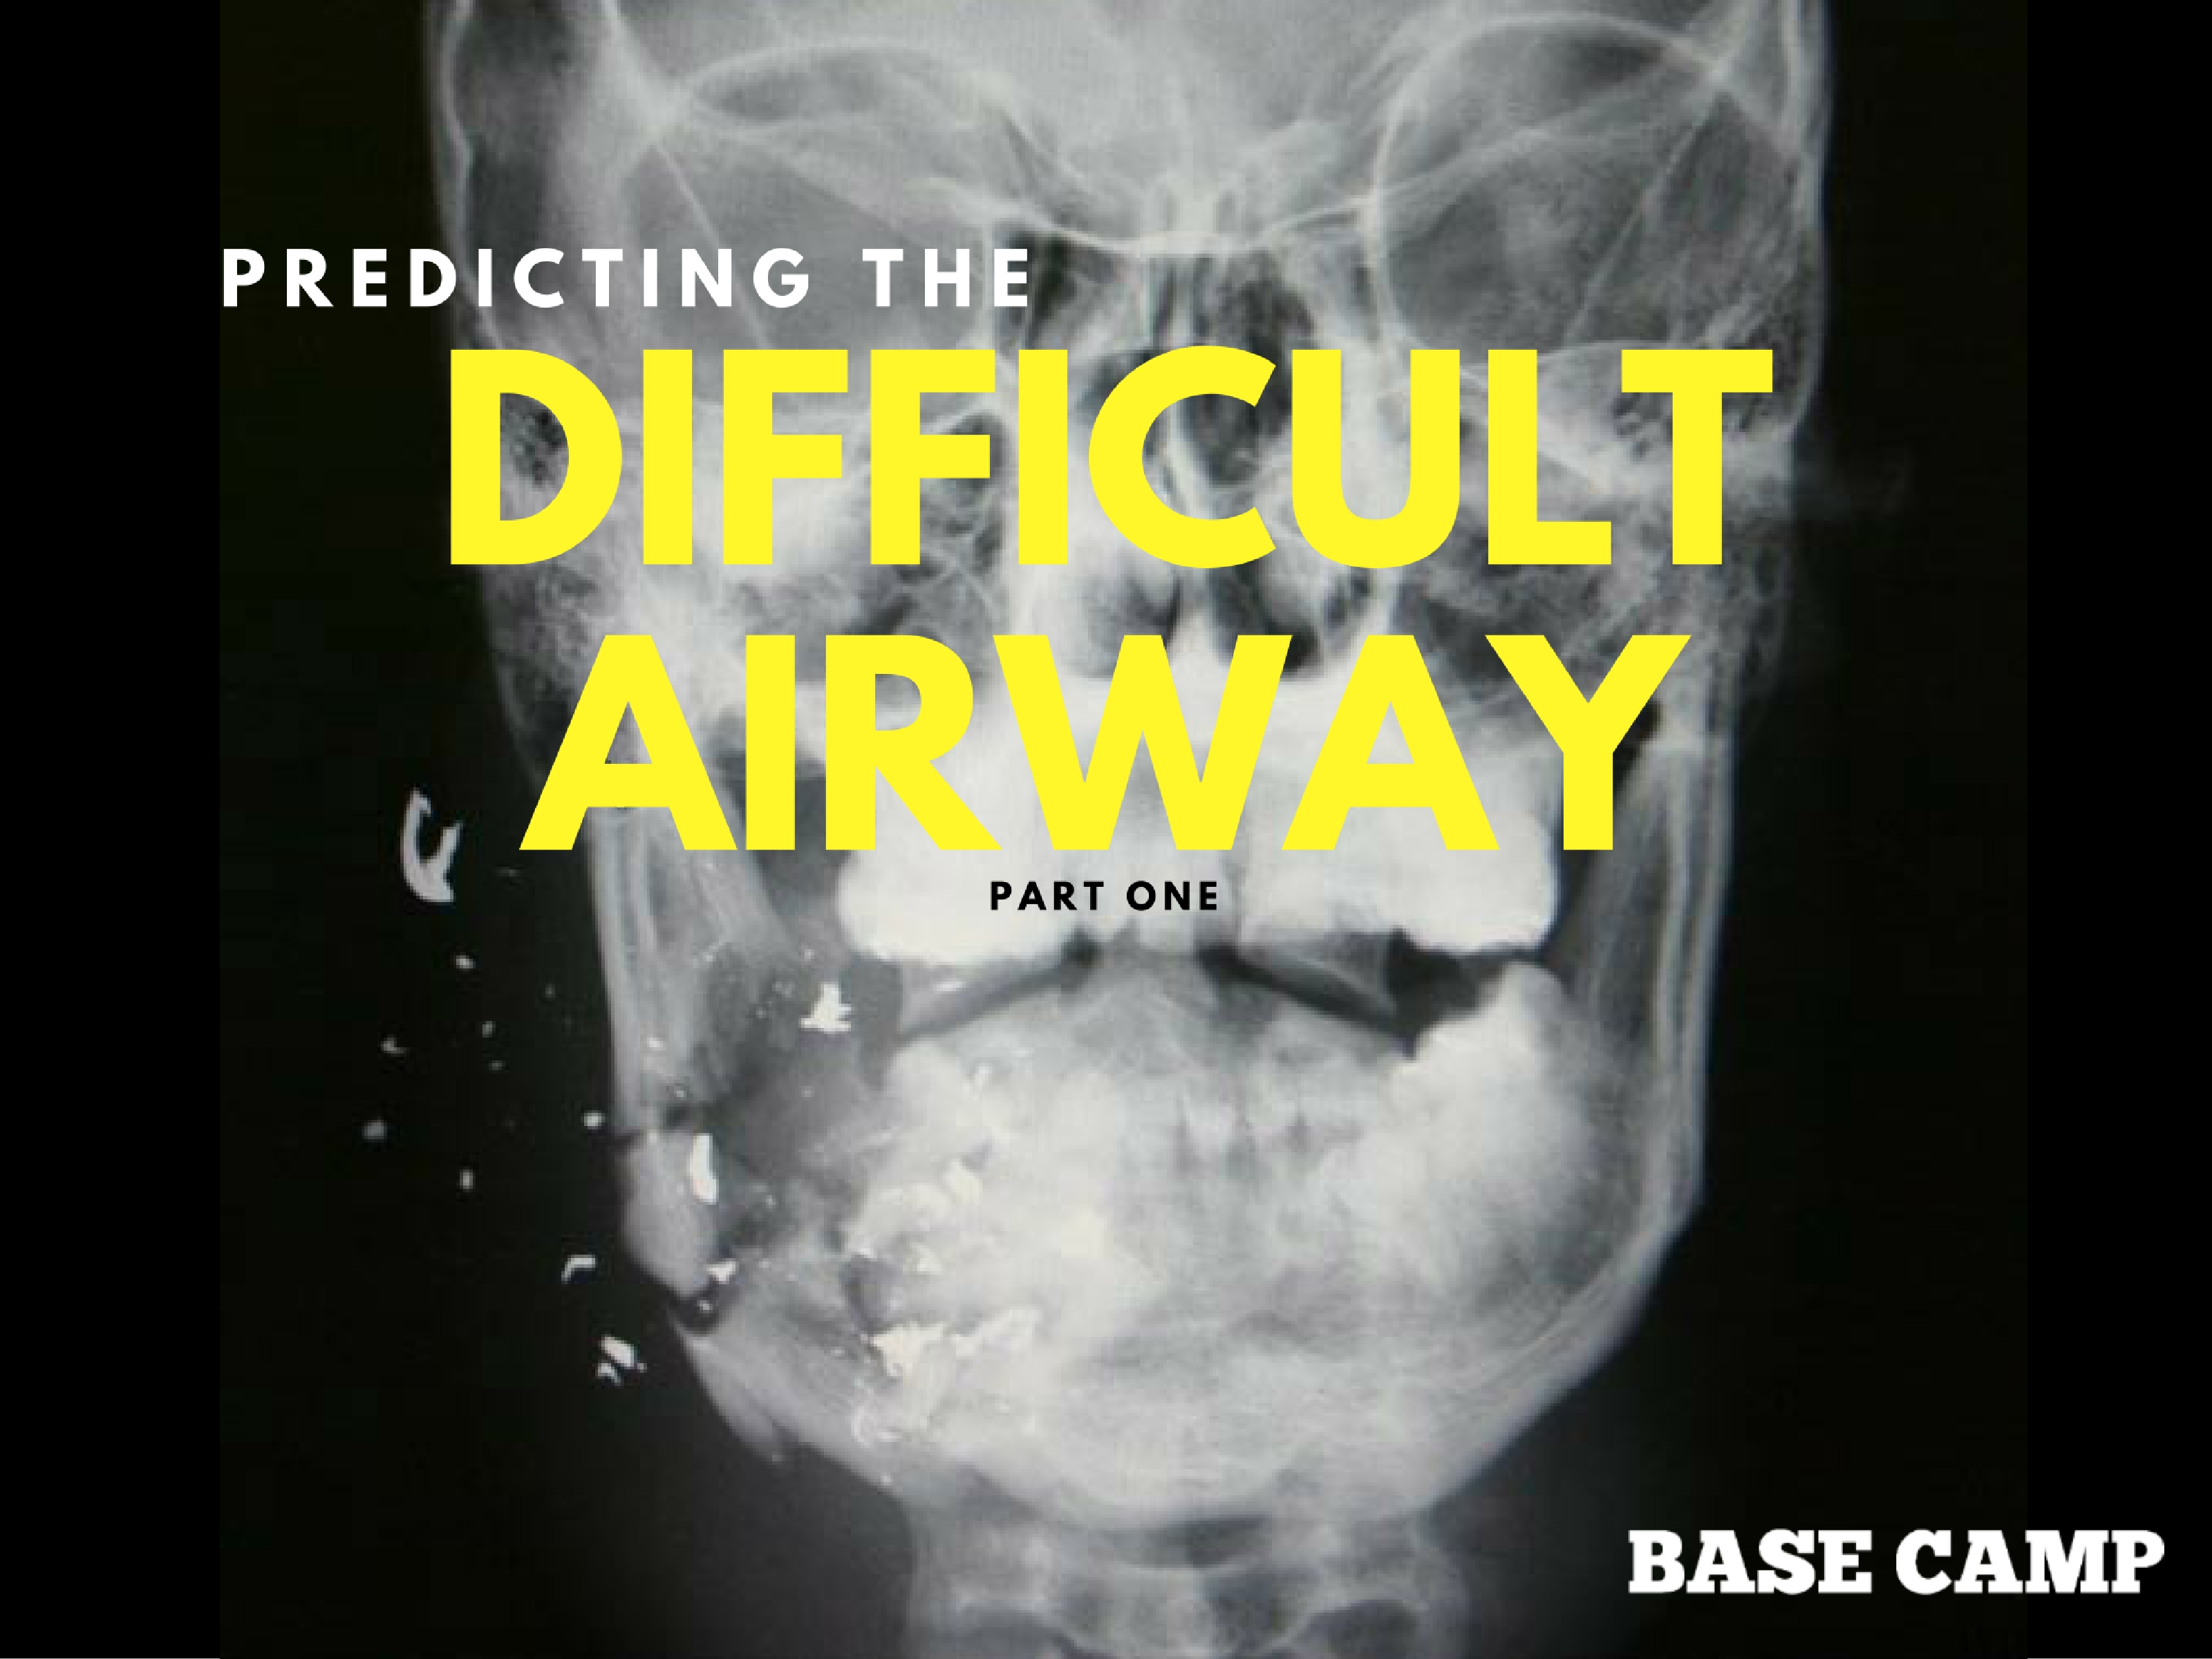 Predicting The Difficult Airway 1